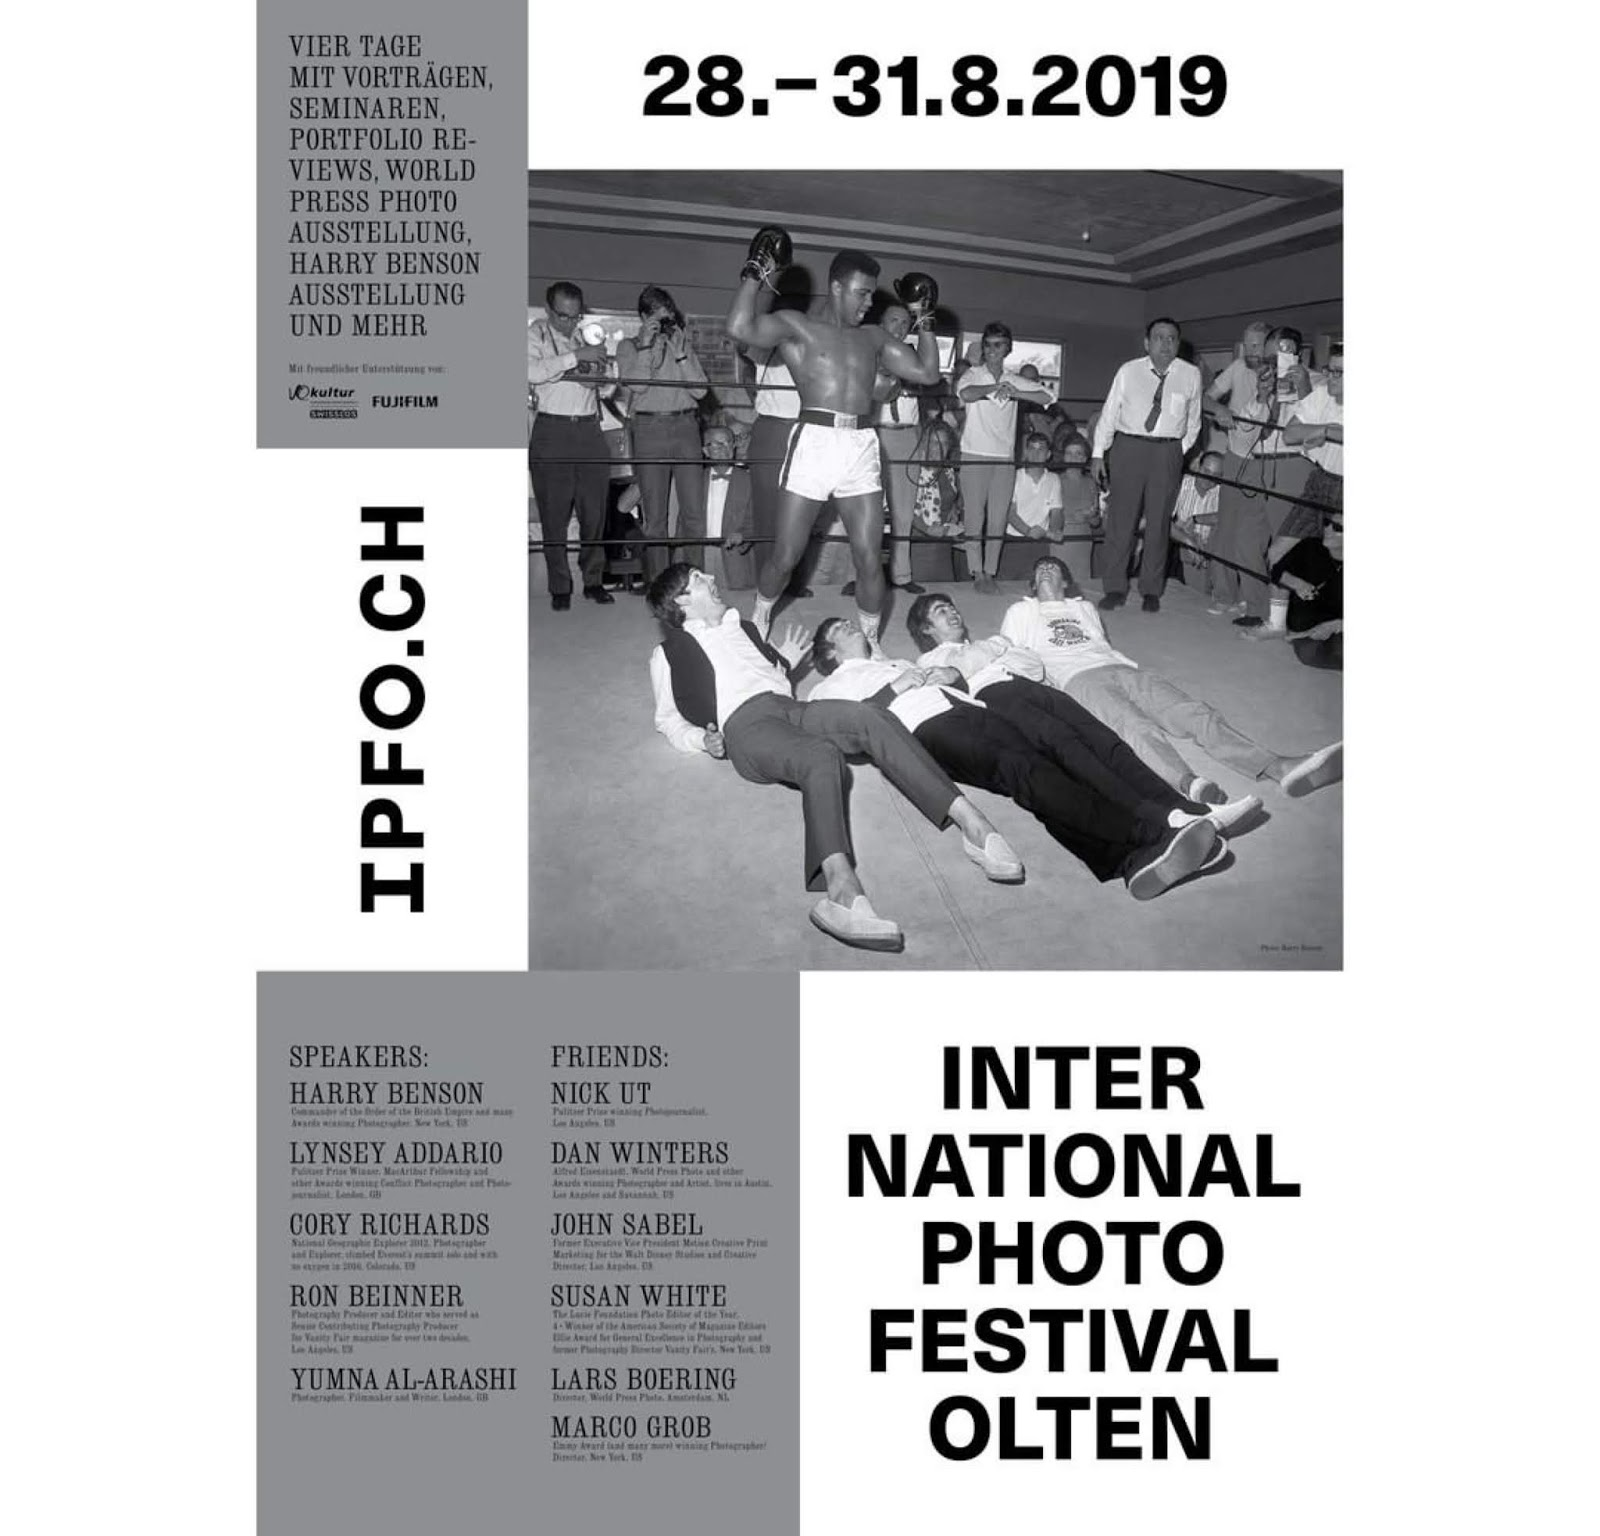 The Second Edition of the IPFO - International Photo Festival Olten from 28.-31.8.2019